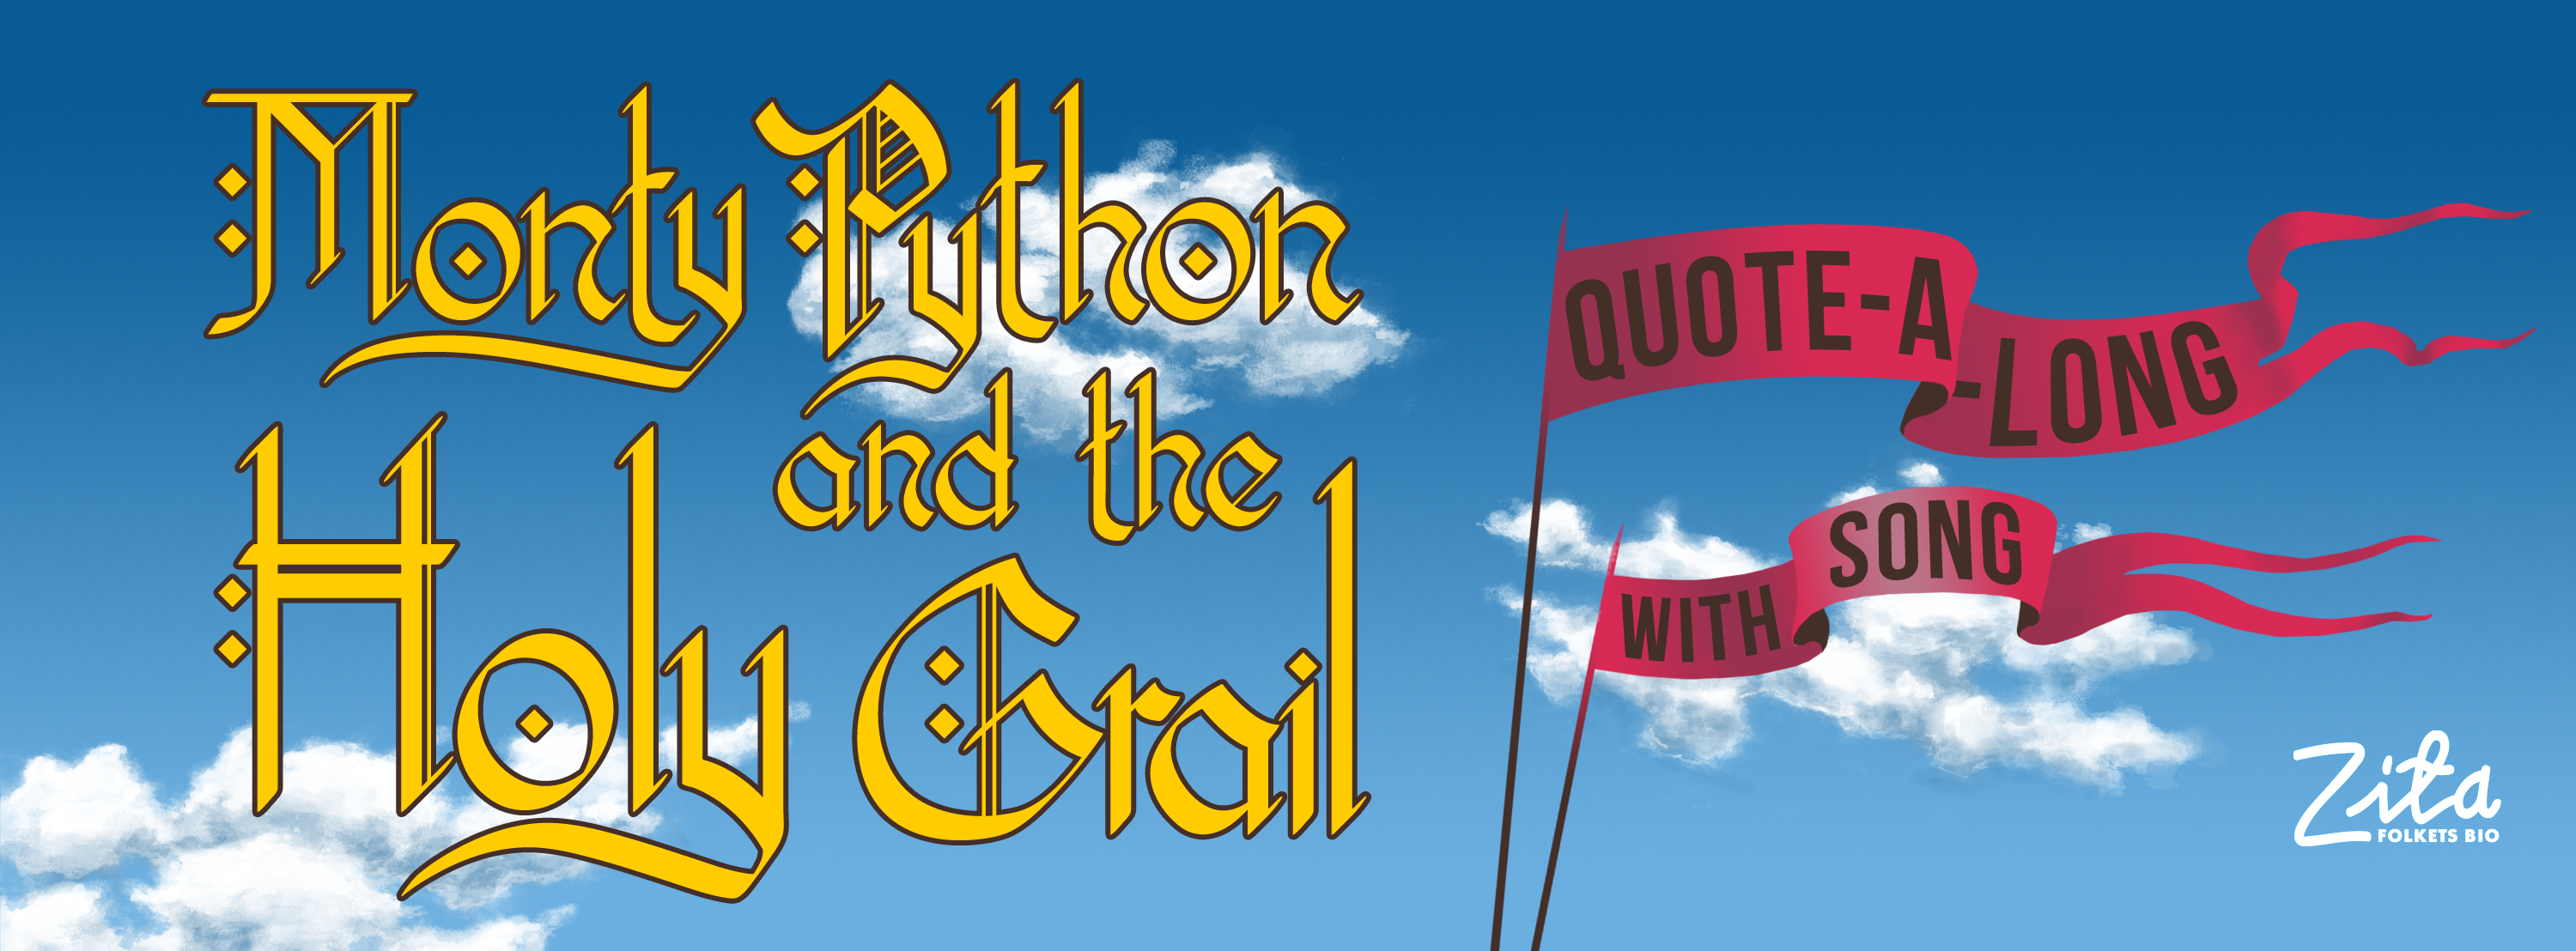 Monty Python and the Holy Grail - Quote A Long with song!